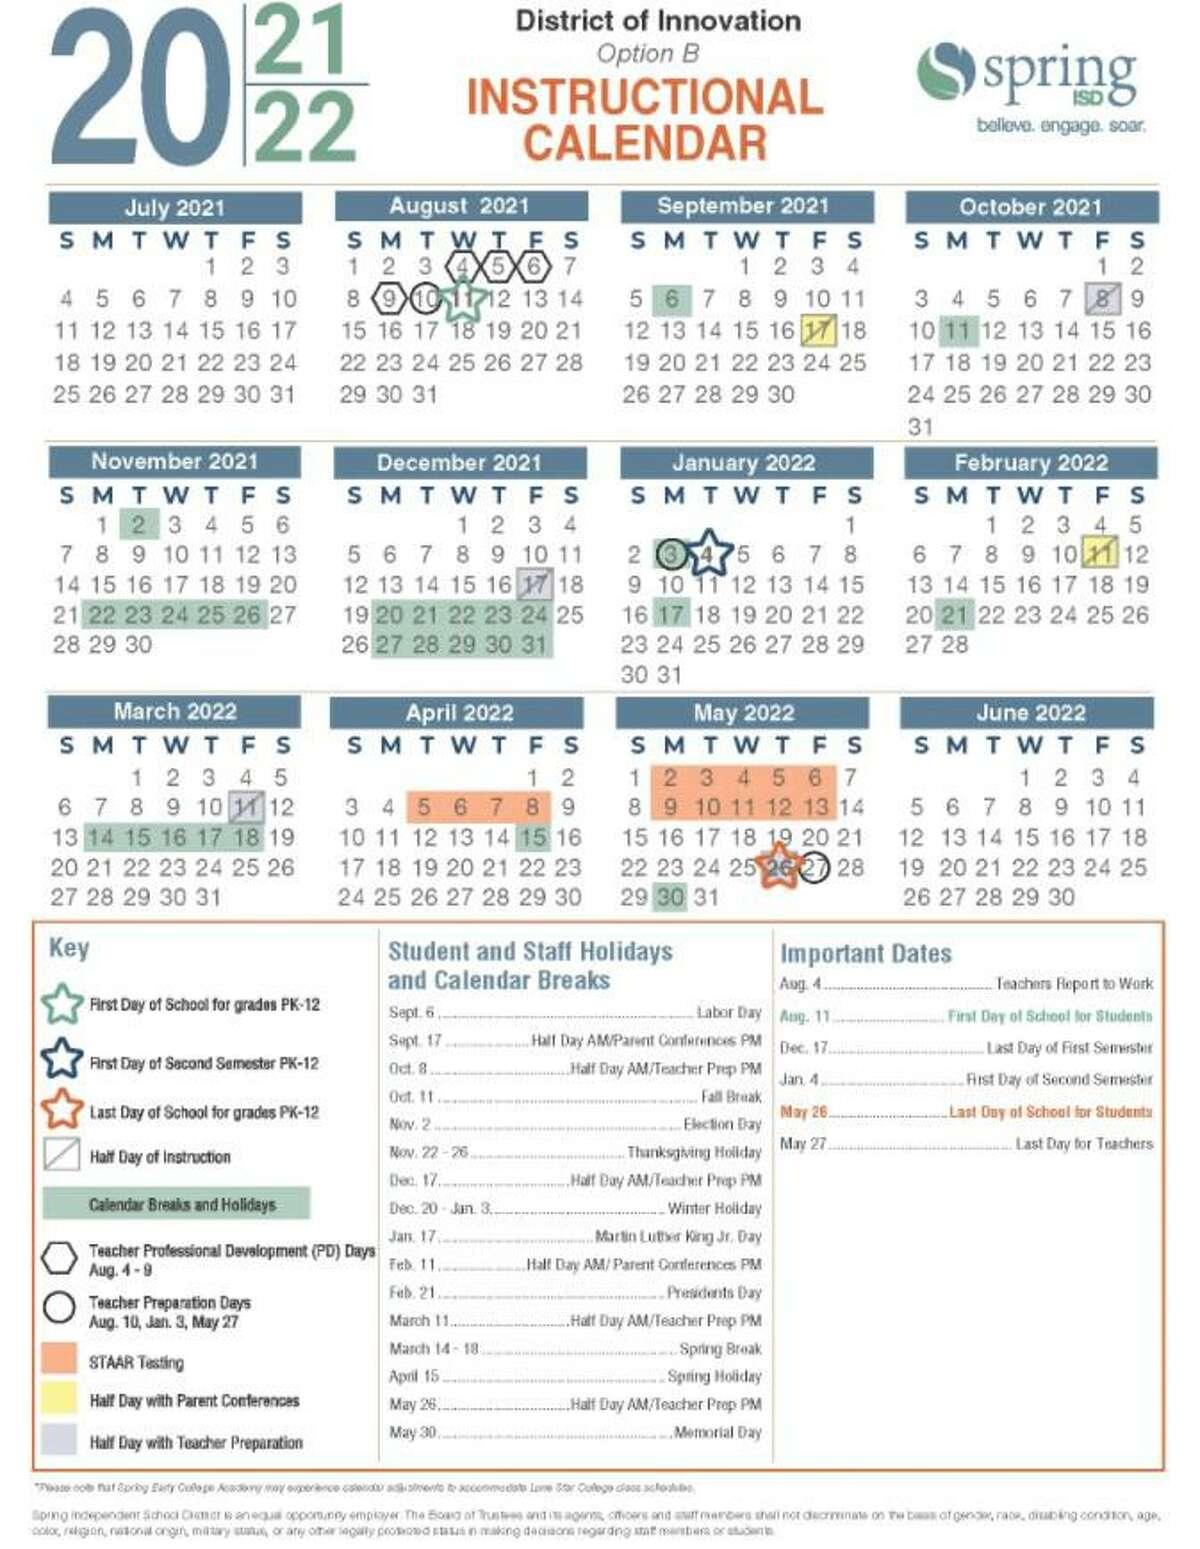 The Spring ISD board of trustees approved the instructional calendar for the 2021-2022 school year at their Feb. 9, 2021 meeting.